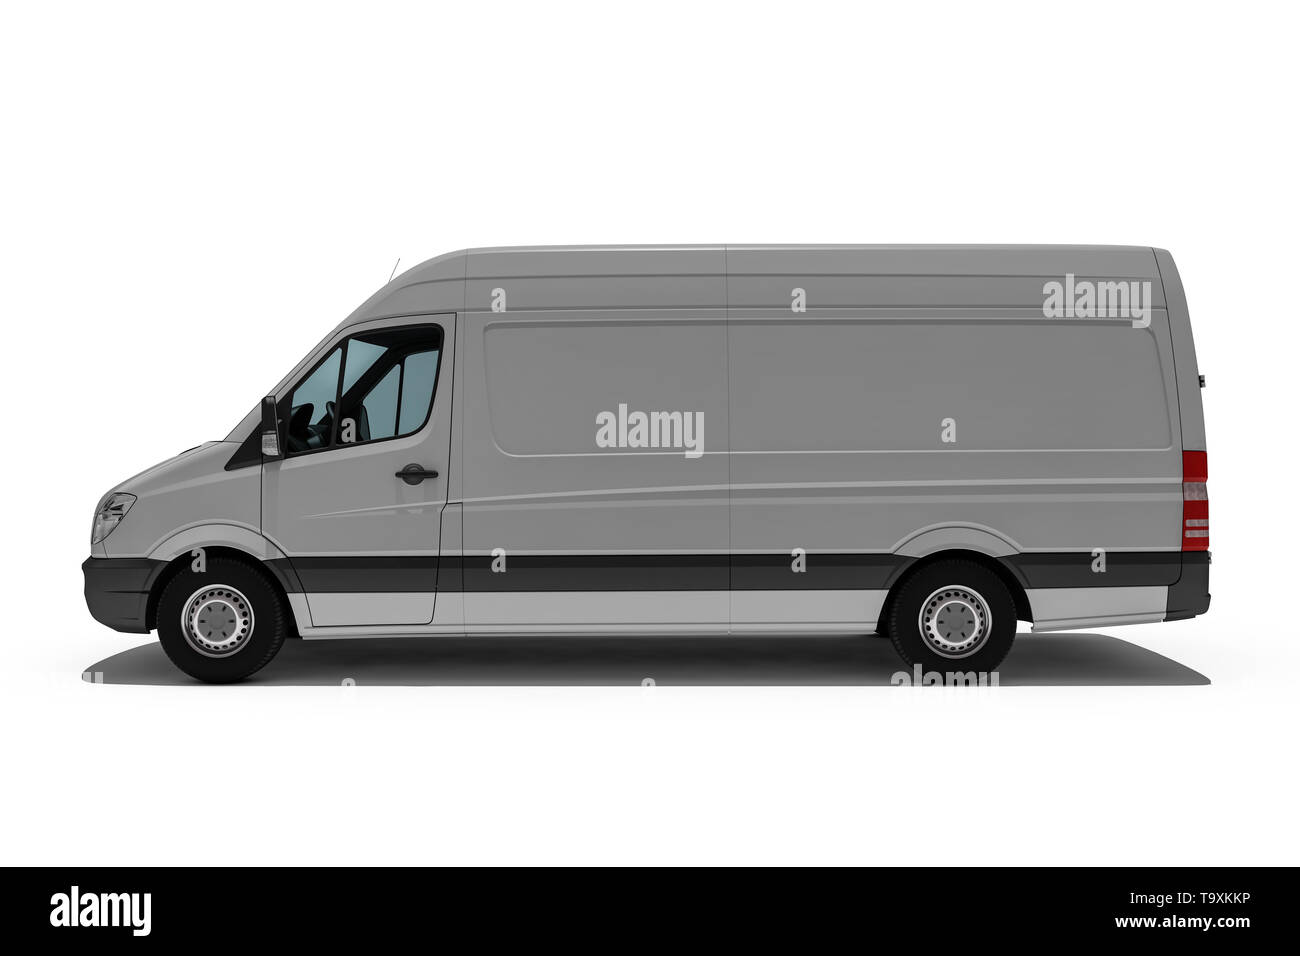 3d rendering of Van or truck of freight forwarder or shipping company quickly delivers packages and deliveries Stock Photo